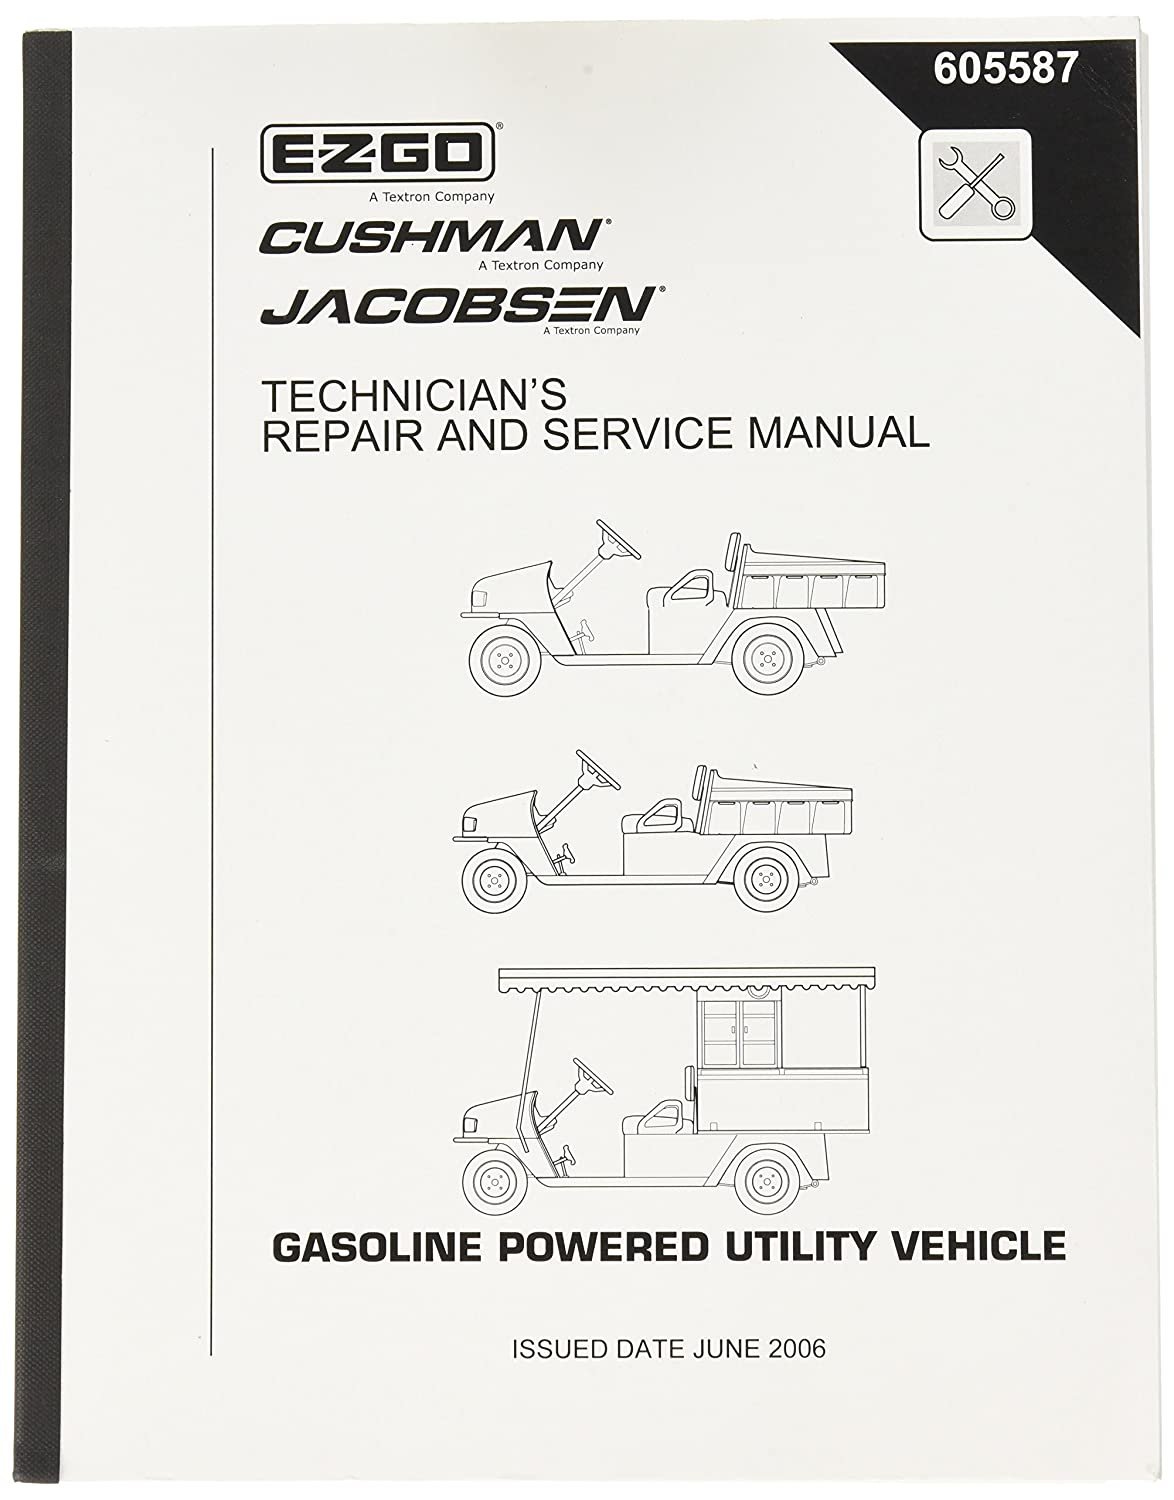 Amazon.com : EZGO 605587 2006 Current Technician's Repair Manual for MPT  800, 1200CE, CARB : Outdoor Decorative Fences : Garden & Outdoor